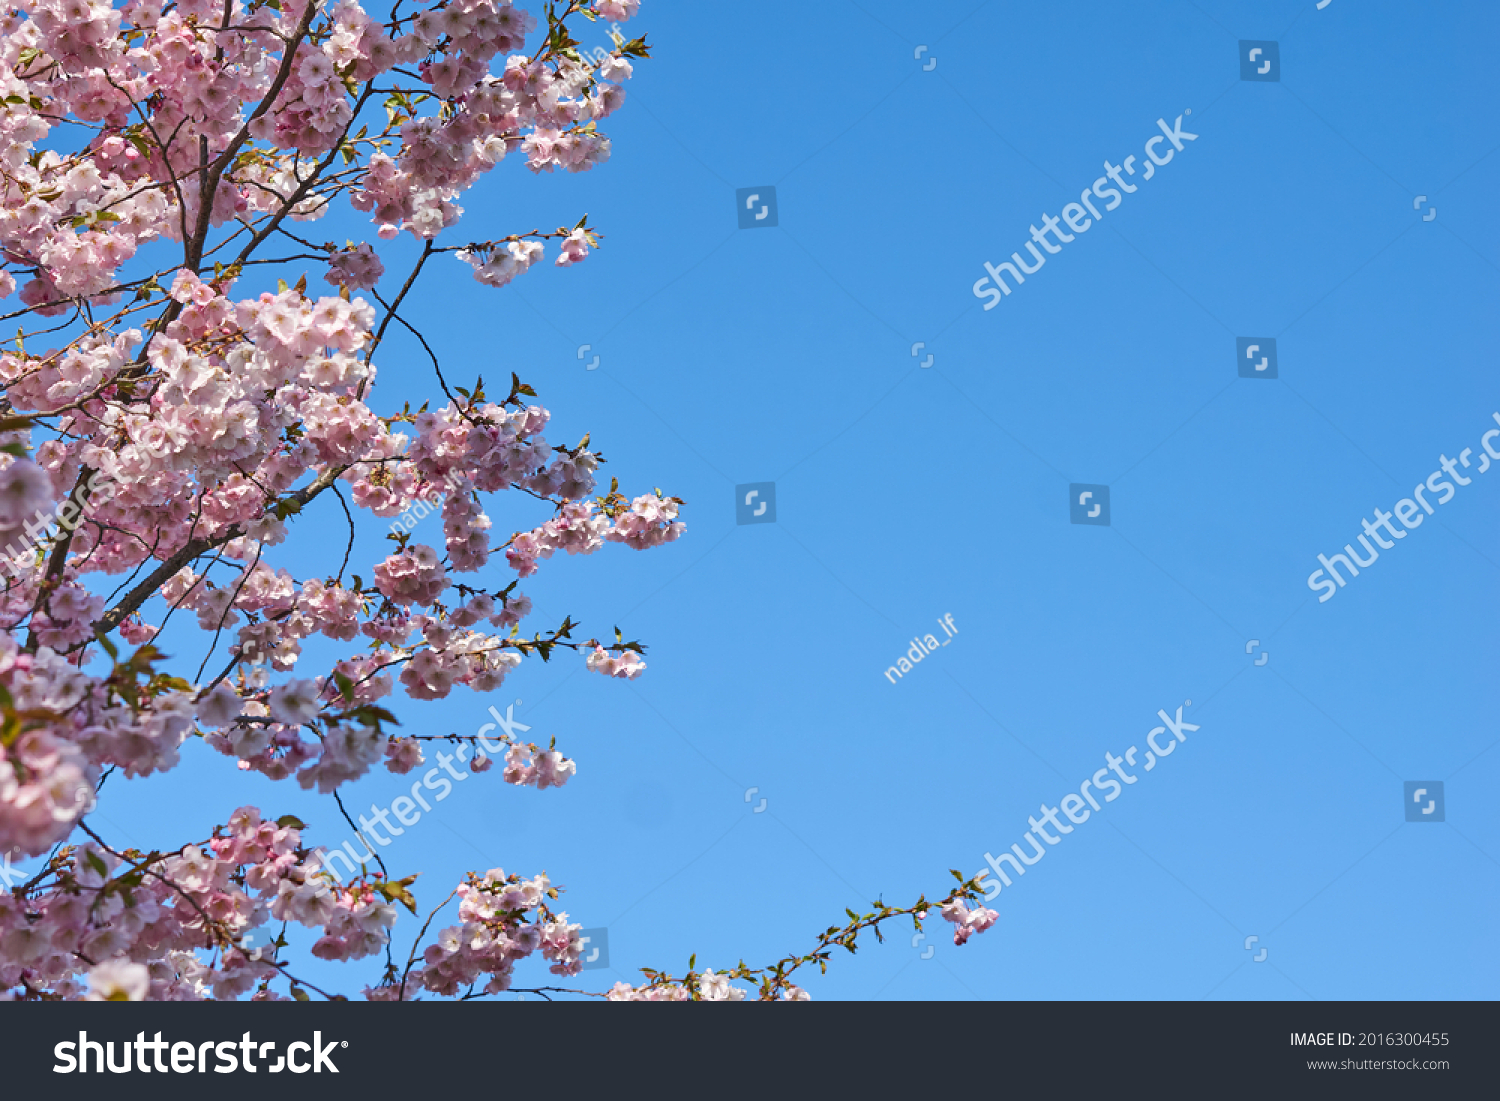 Sakura, Pink cherry blossom on background blue sky. Space for text. High quality photo #2016300455